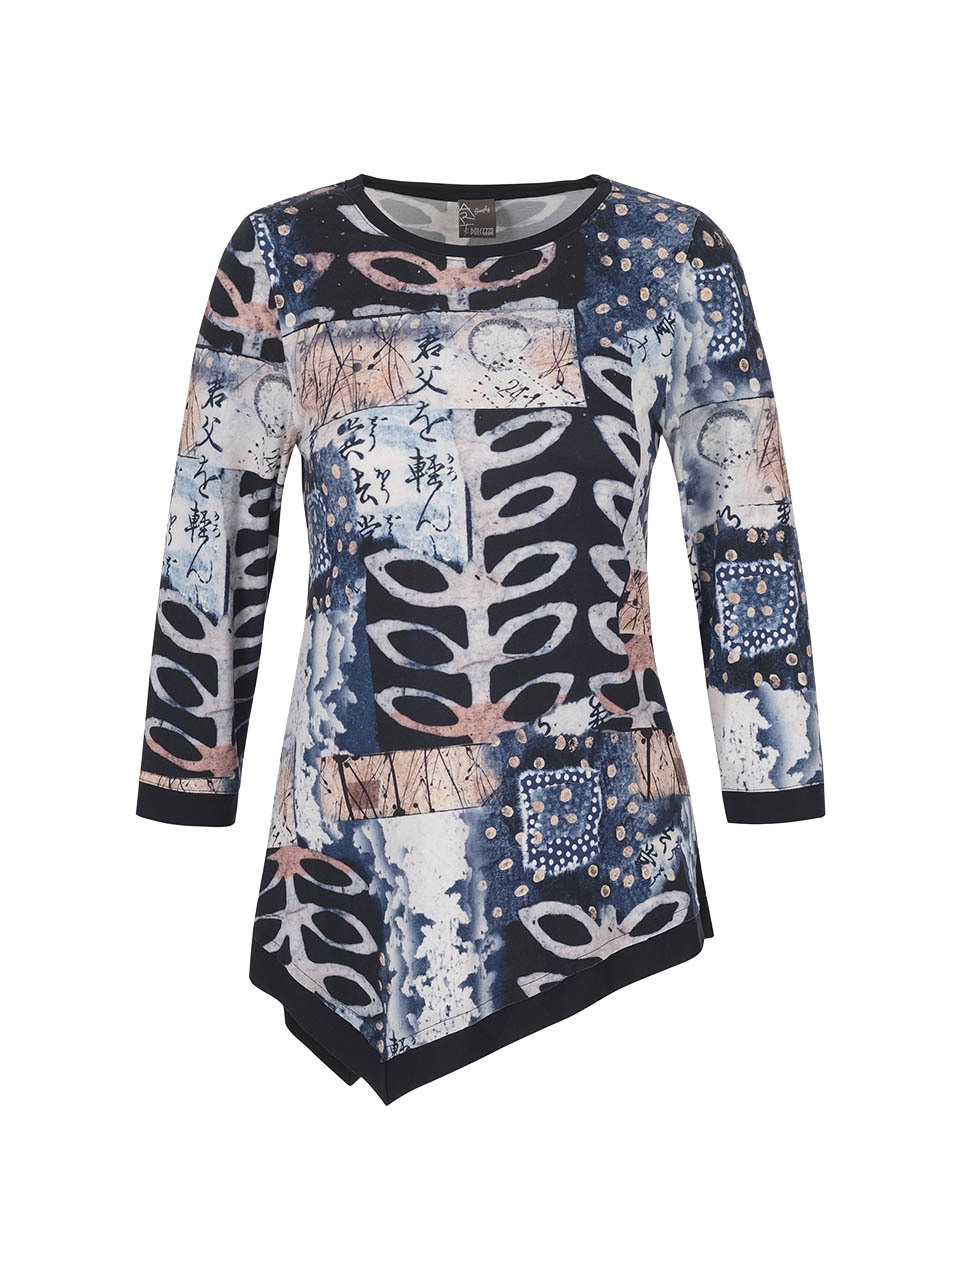 Simply Art Dolcezza: Papers In Color Asymmetrical Art Tunic (Few Left!) Dolcezza_SimplyArt_71731